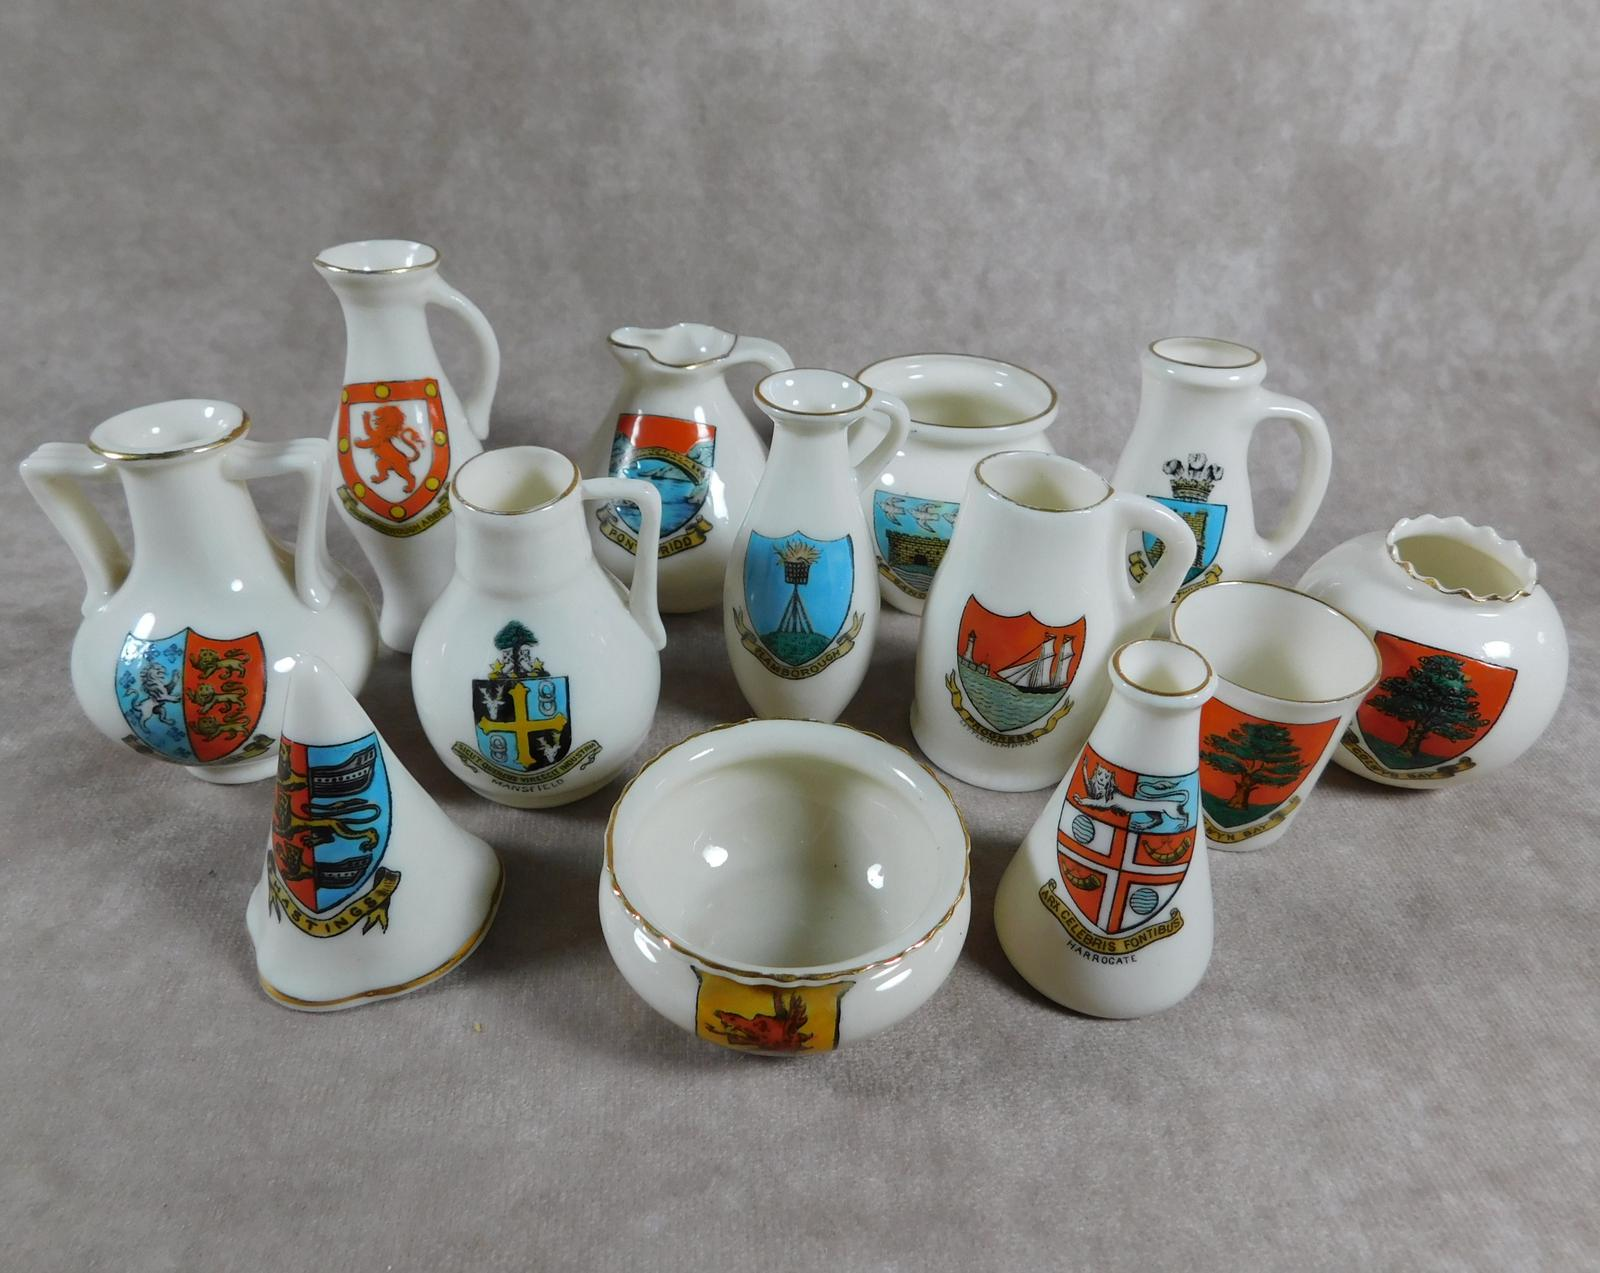 Collection of W.H Goss Crested Ware, Heraldic, Souvenir China (1 of 1)